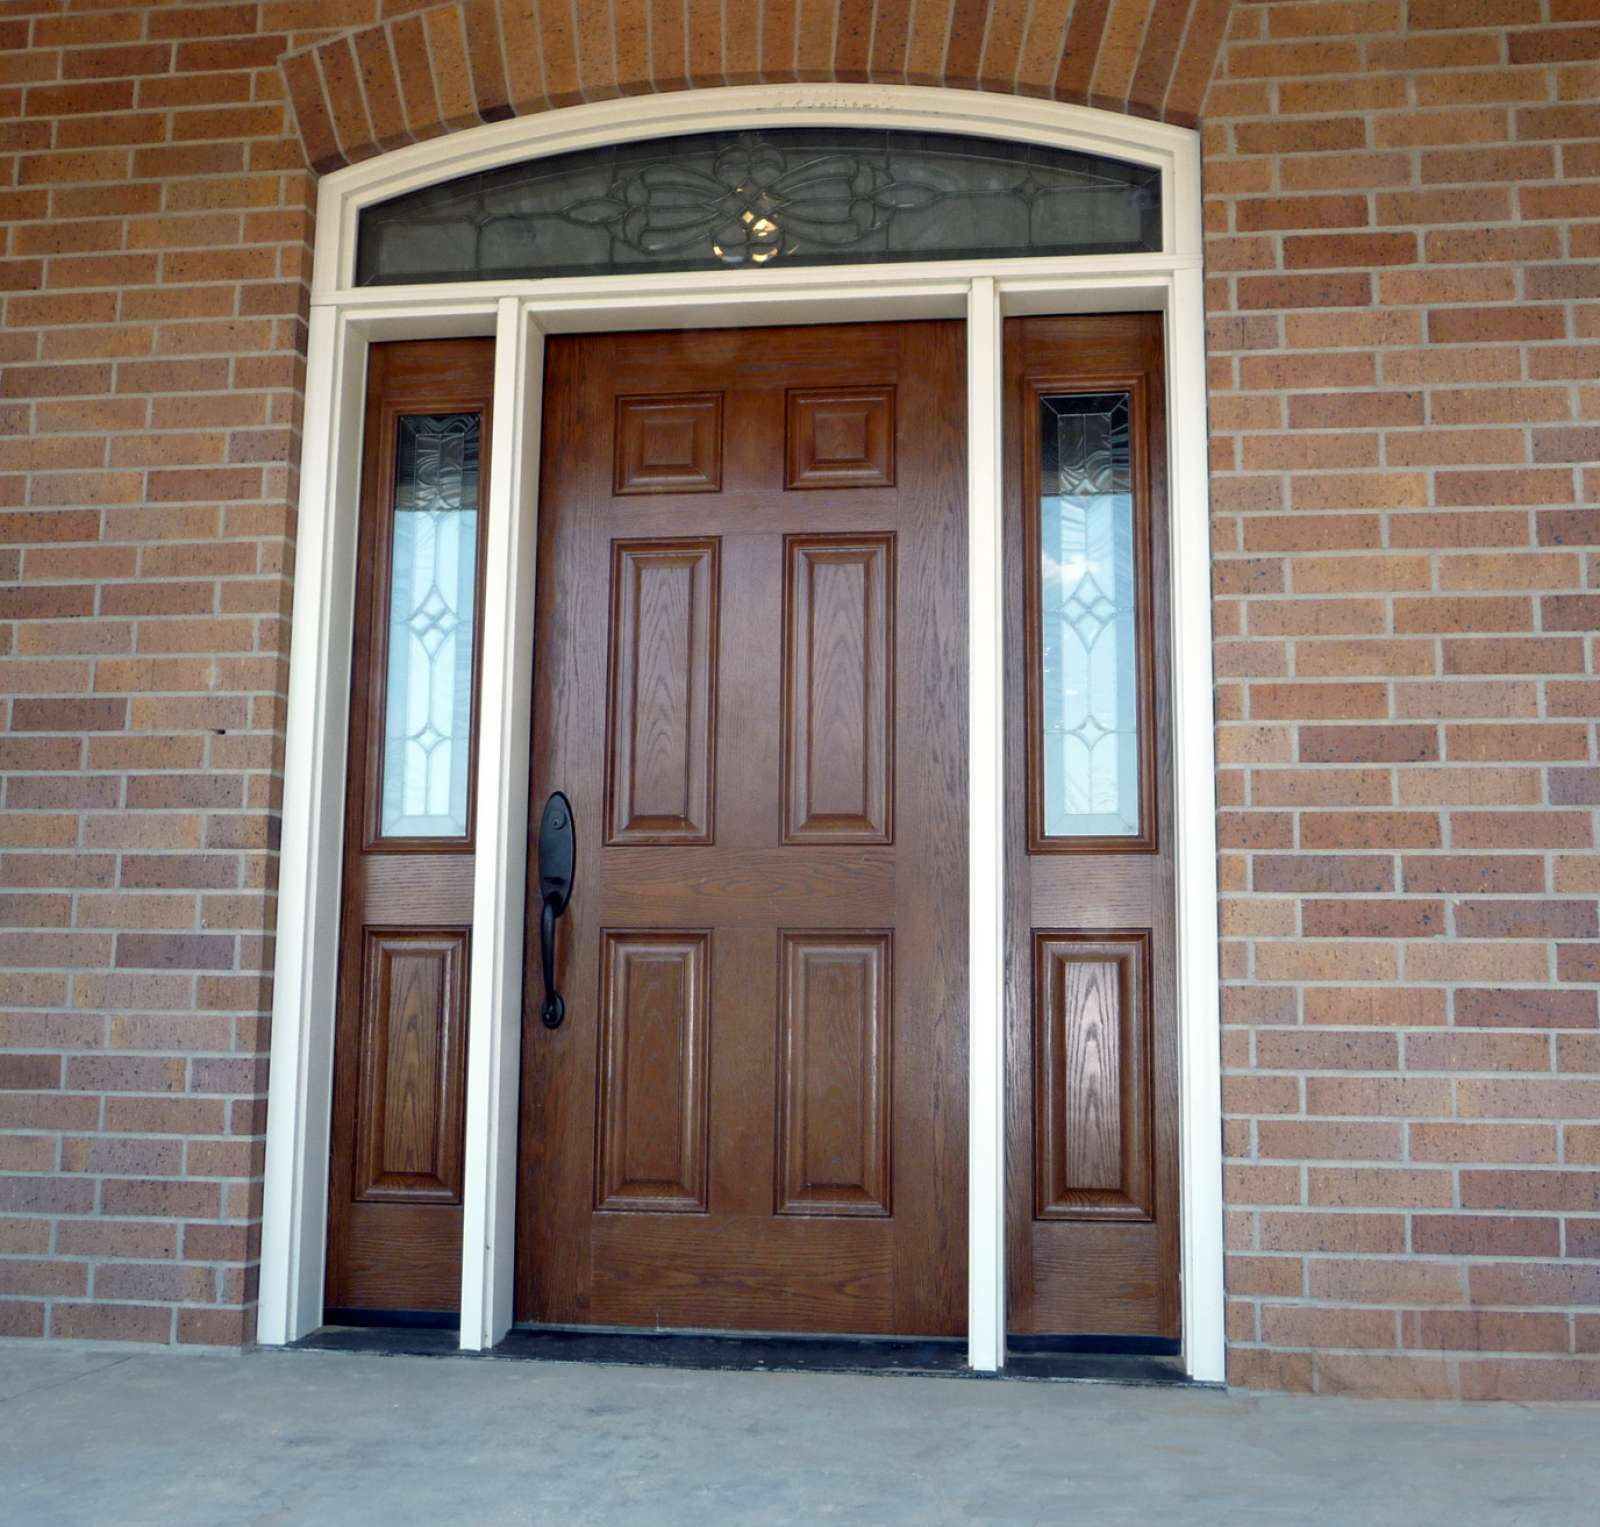 1527 #664230 Signet® Fiberglass Entry Doors Doors Entry Doors Products  picture/photo Exterior Fiberglass Doors 39991600